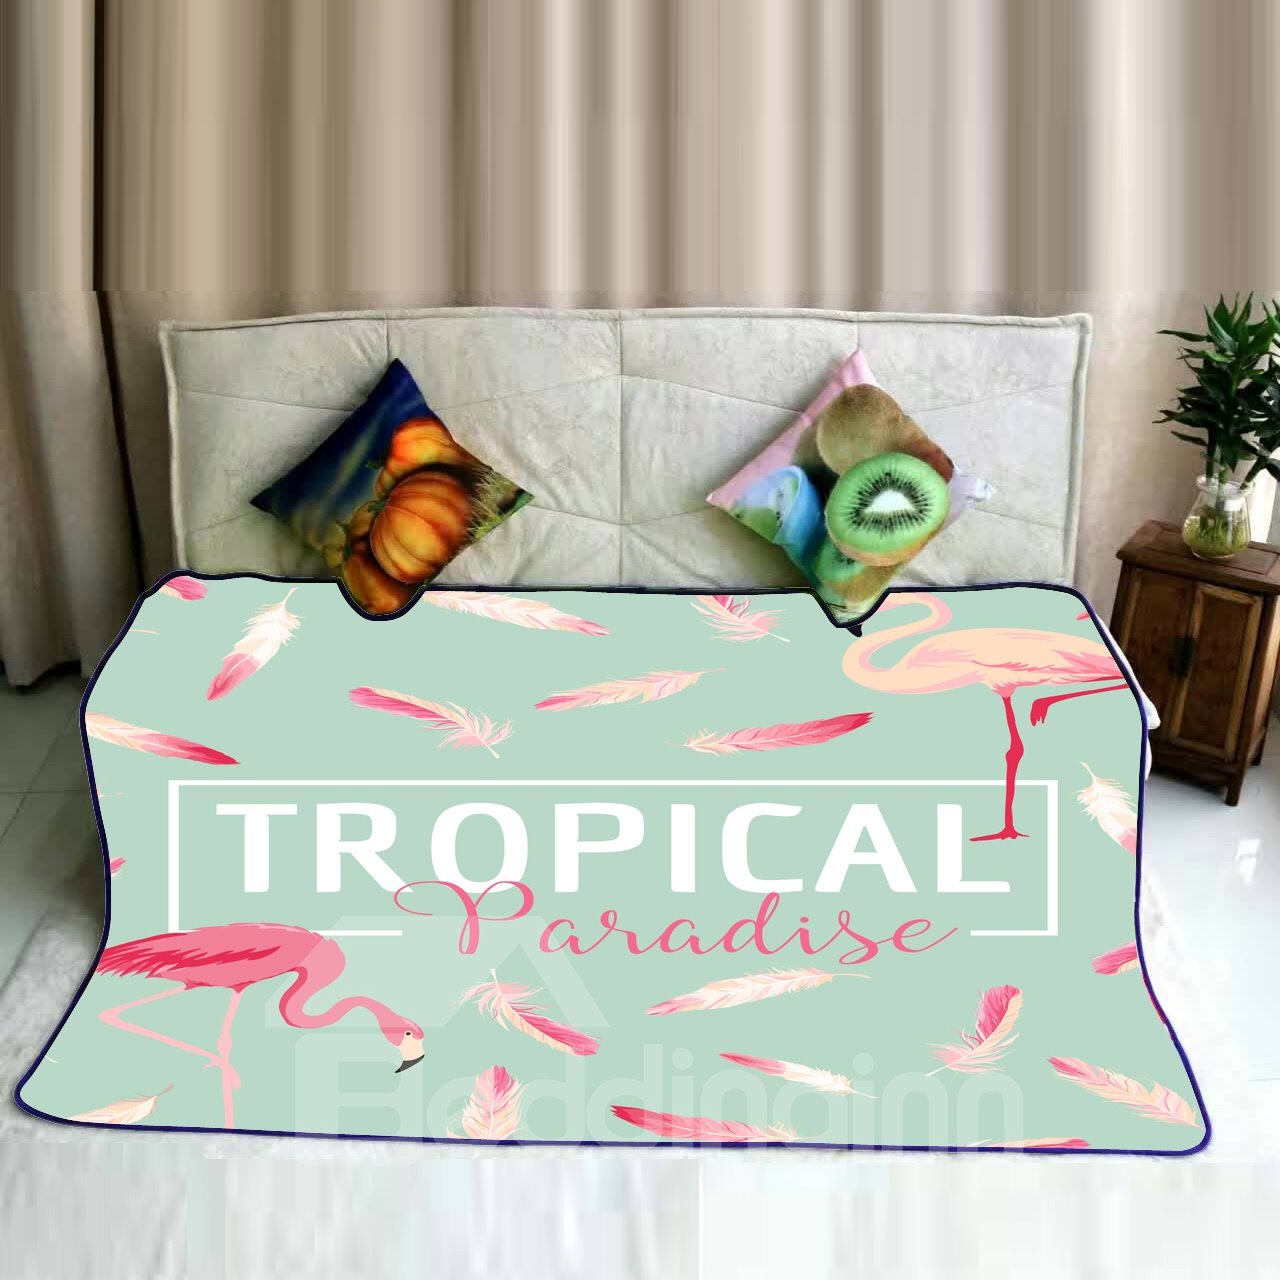 Tropical Paradise with Flamingos Pattern Super Soft Flannel Bed